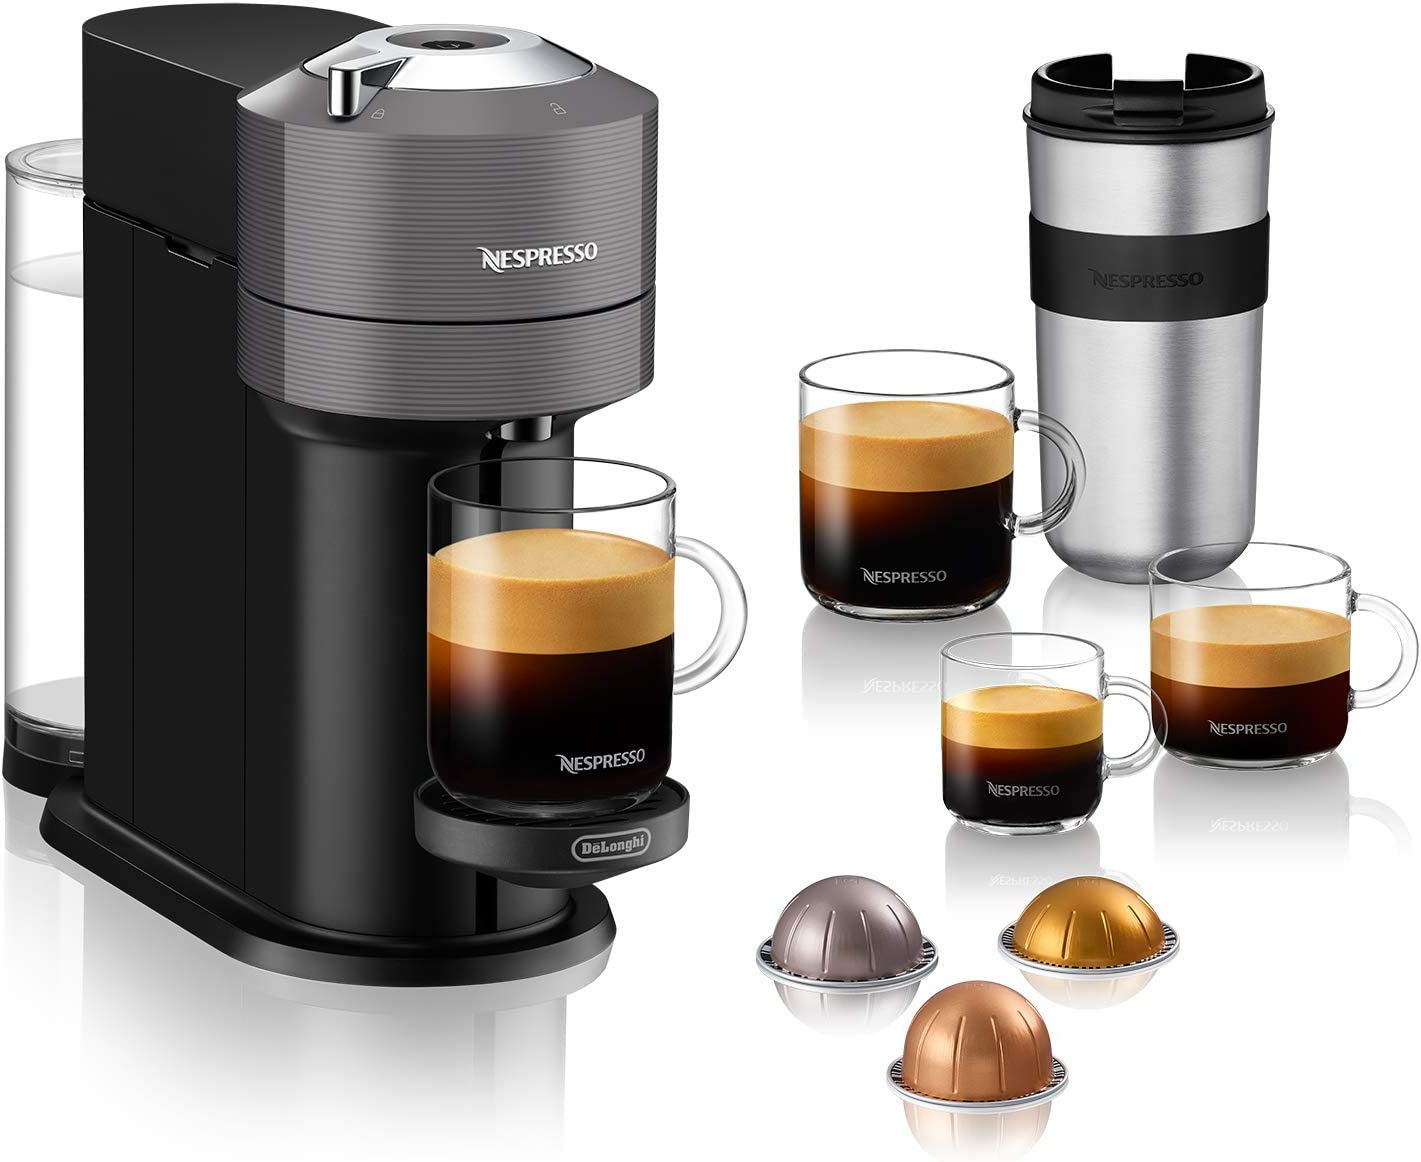 Nespresso Vertuo Next Coffee and Espresso Machine by De'Longhi, Dark Grey, Compact, One Touch to Brew, Single-Serve Coffee Maker and Espresso Machine: Kitchen & Dining